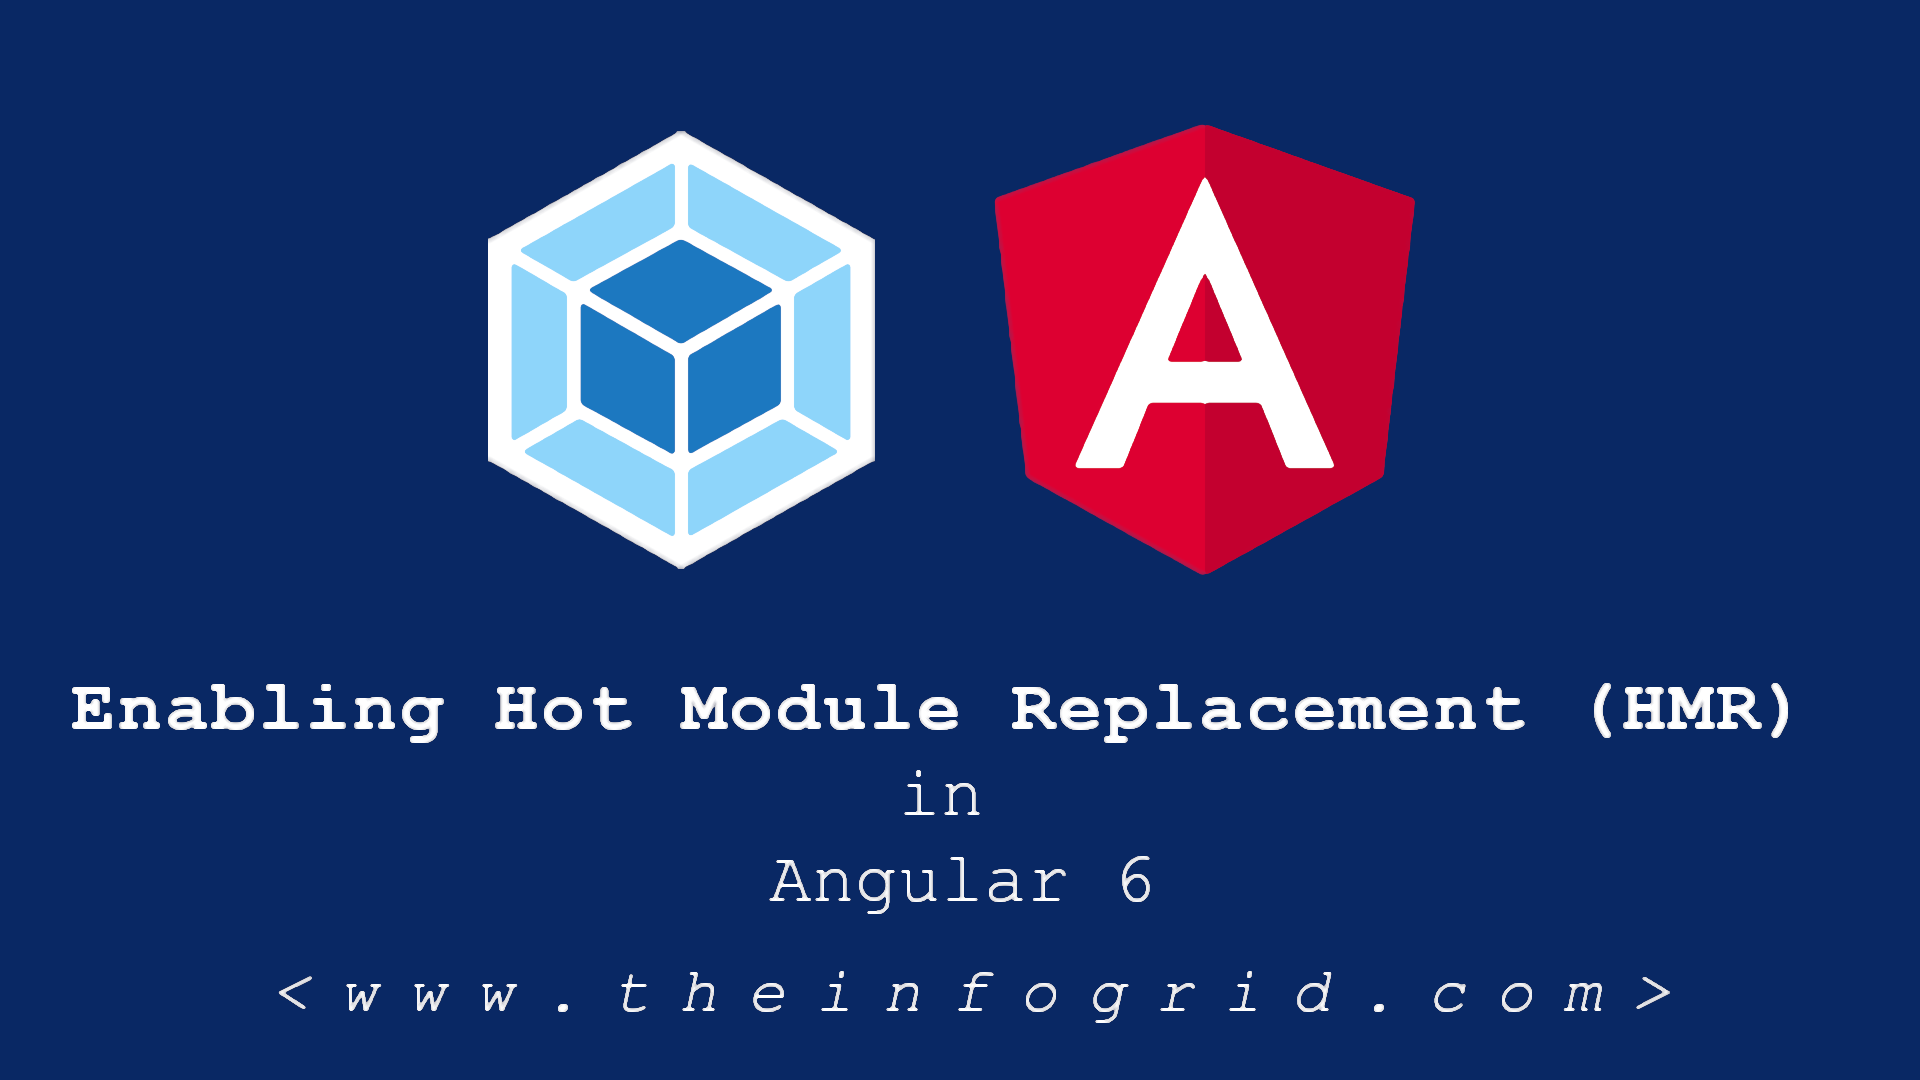 Enabling Hot Module Replacement (HMR) in Angular 6